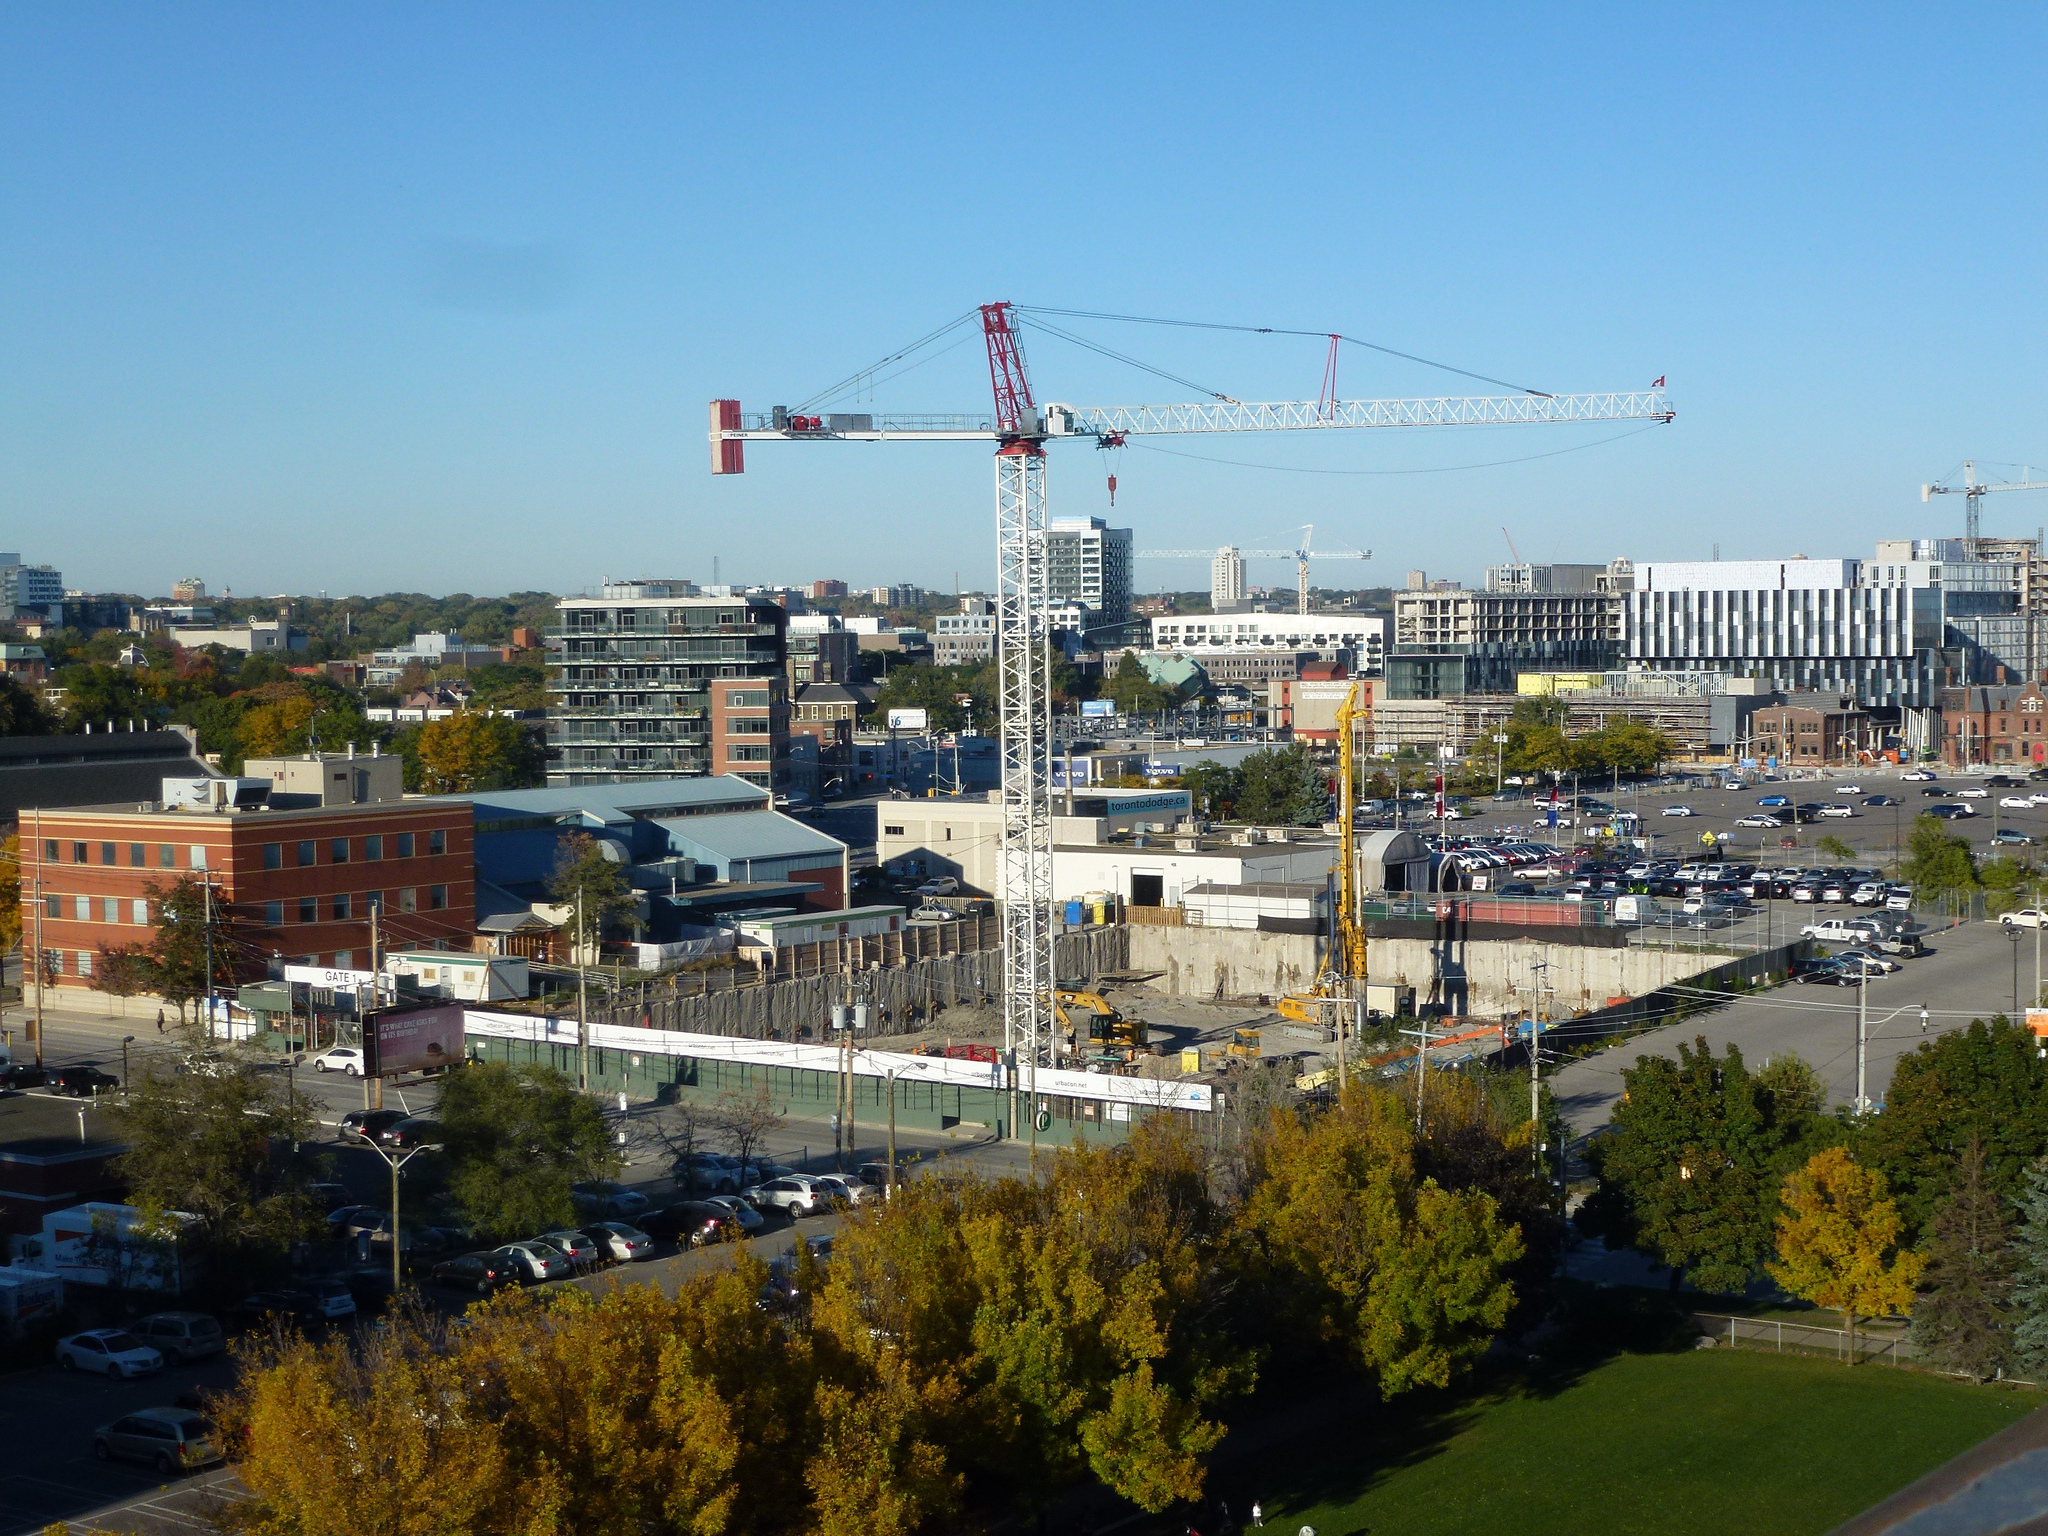 An image of the West Don Lands and construction.